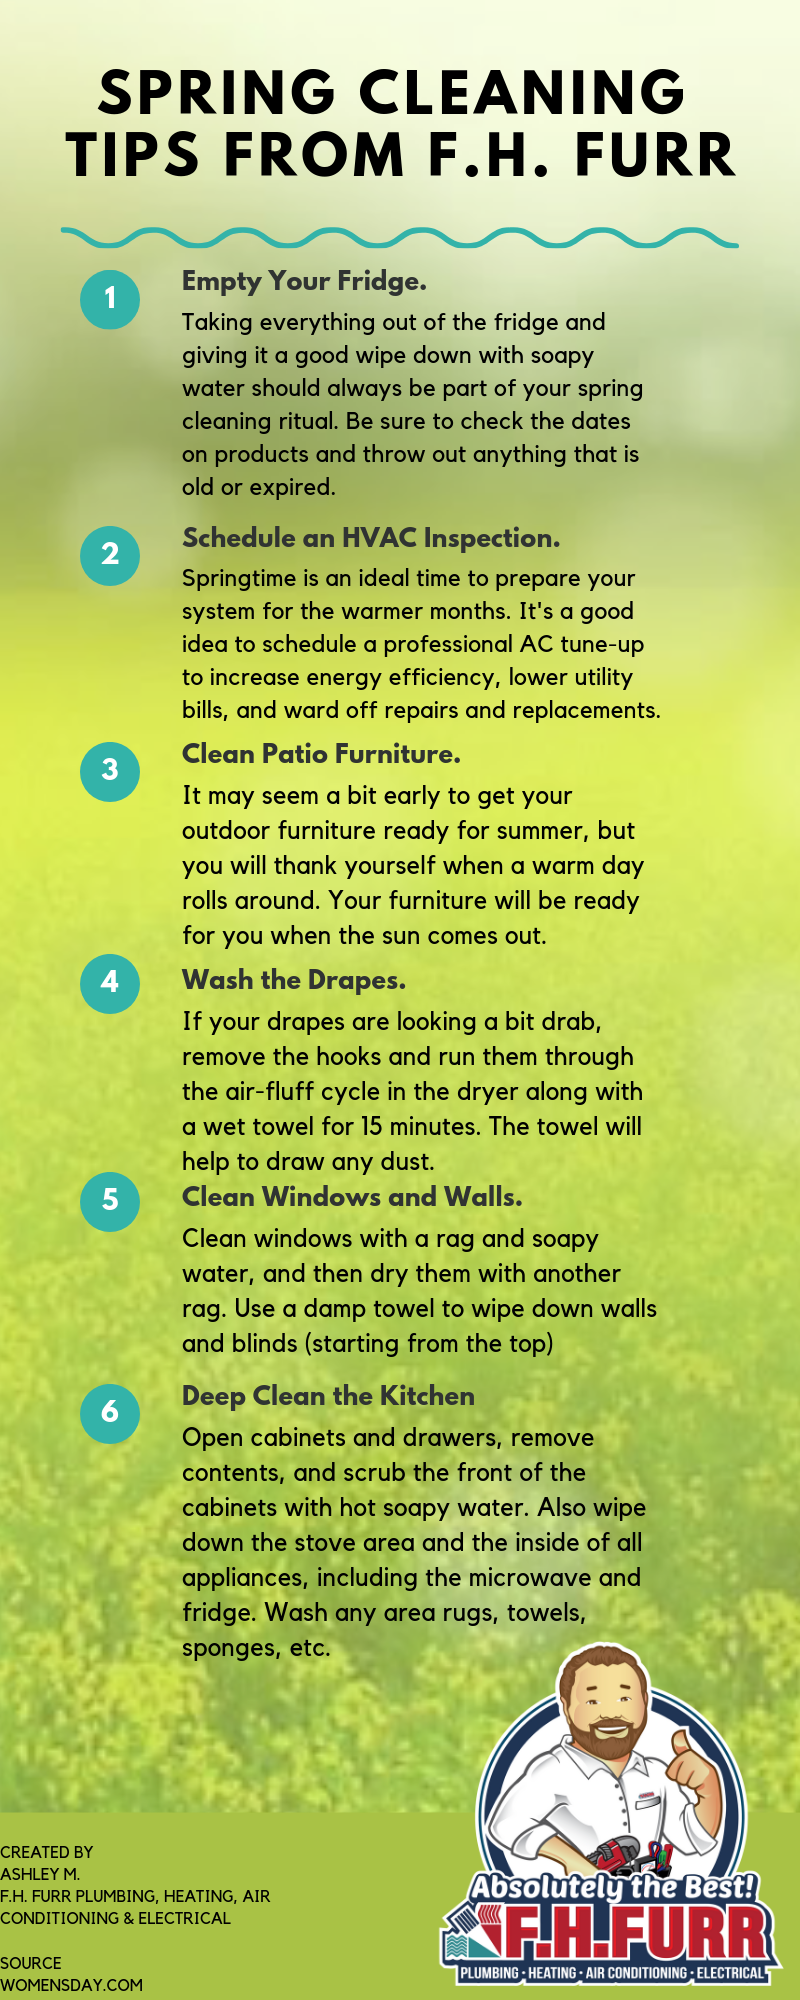 Spring Cleaning Tips F.H. Furr